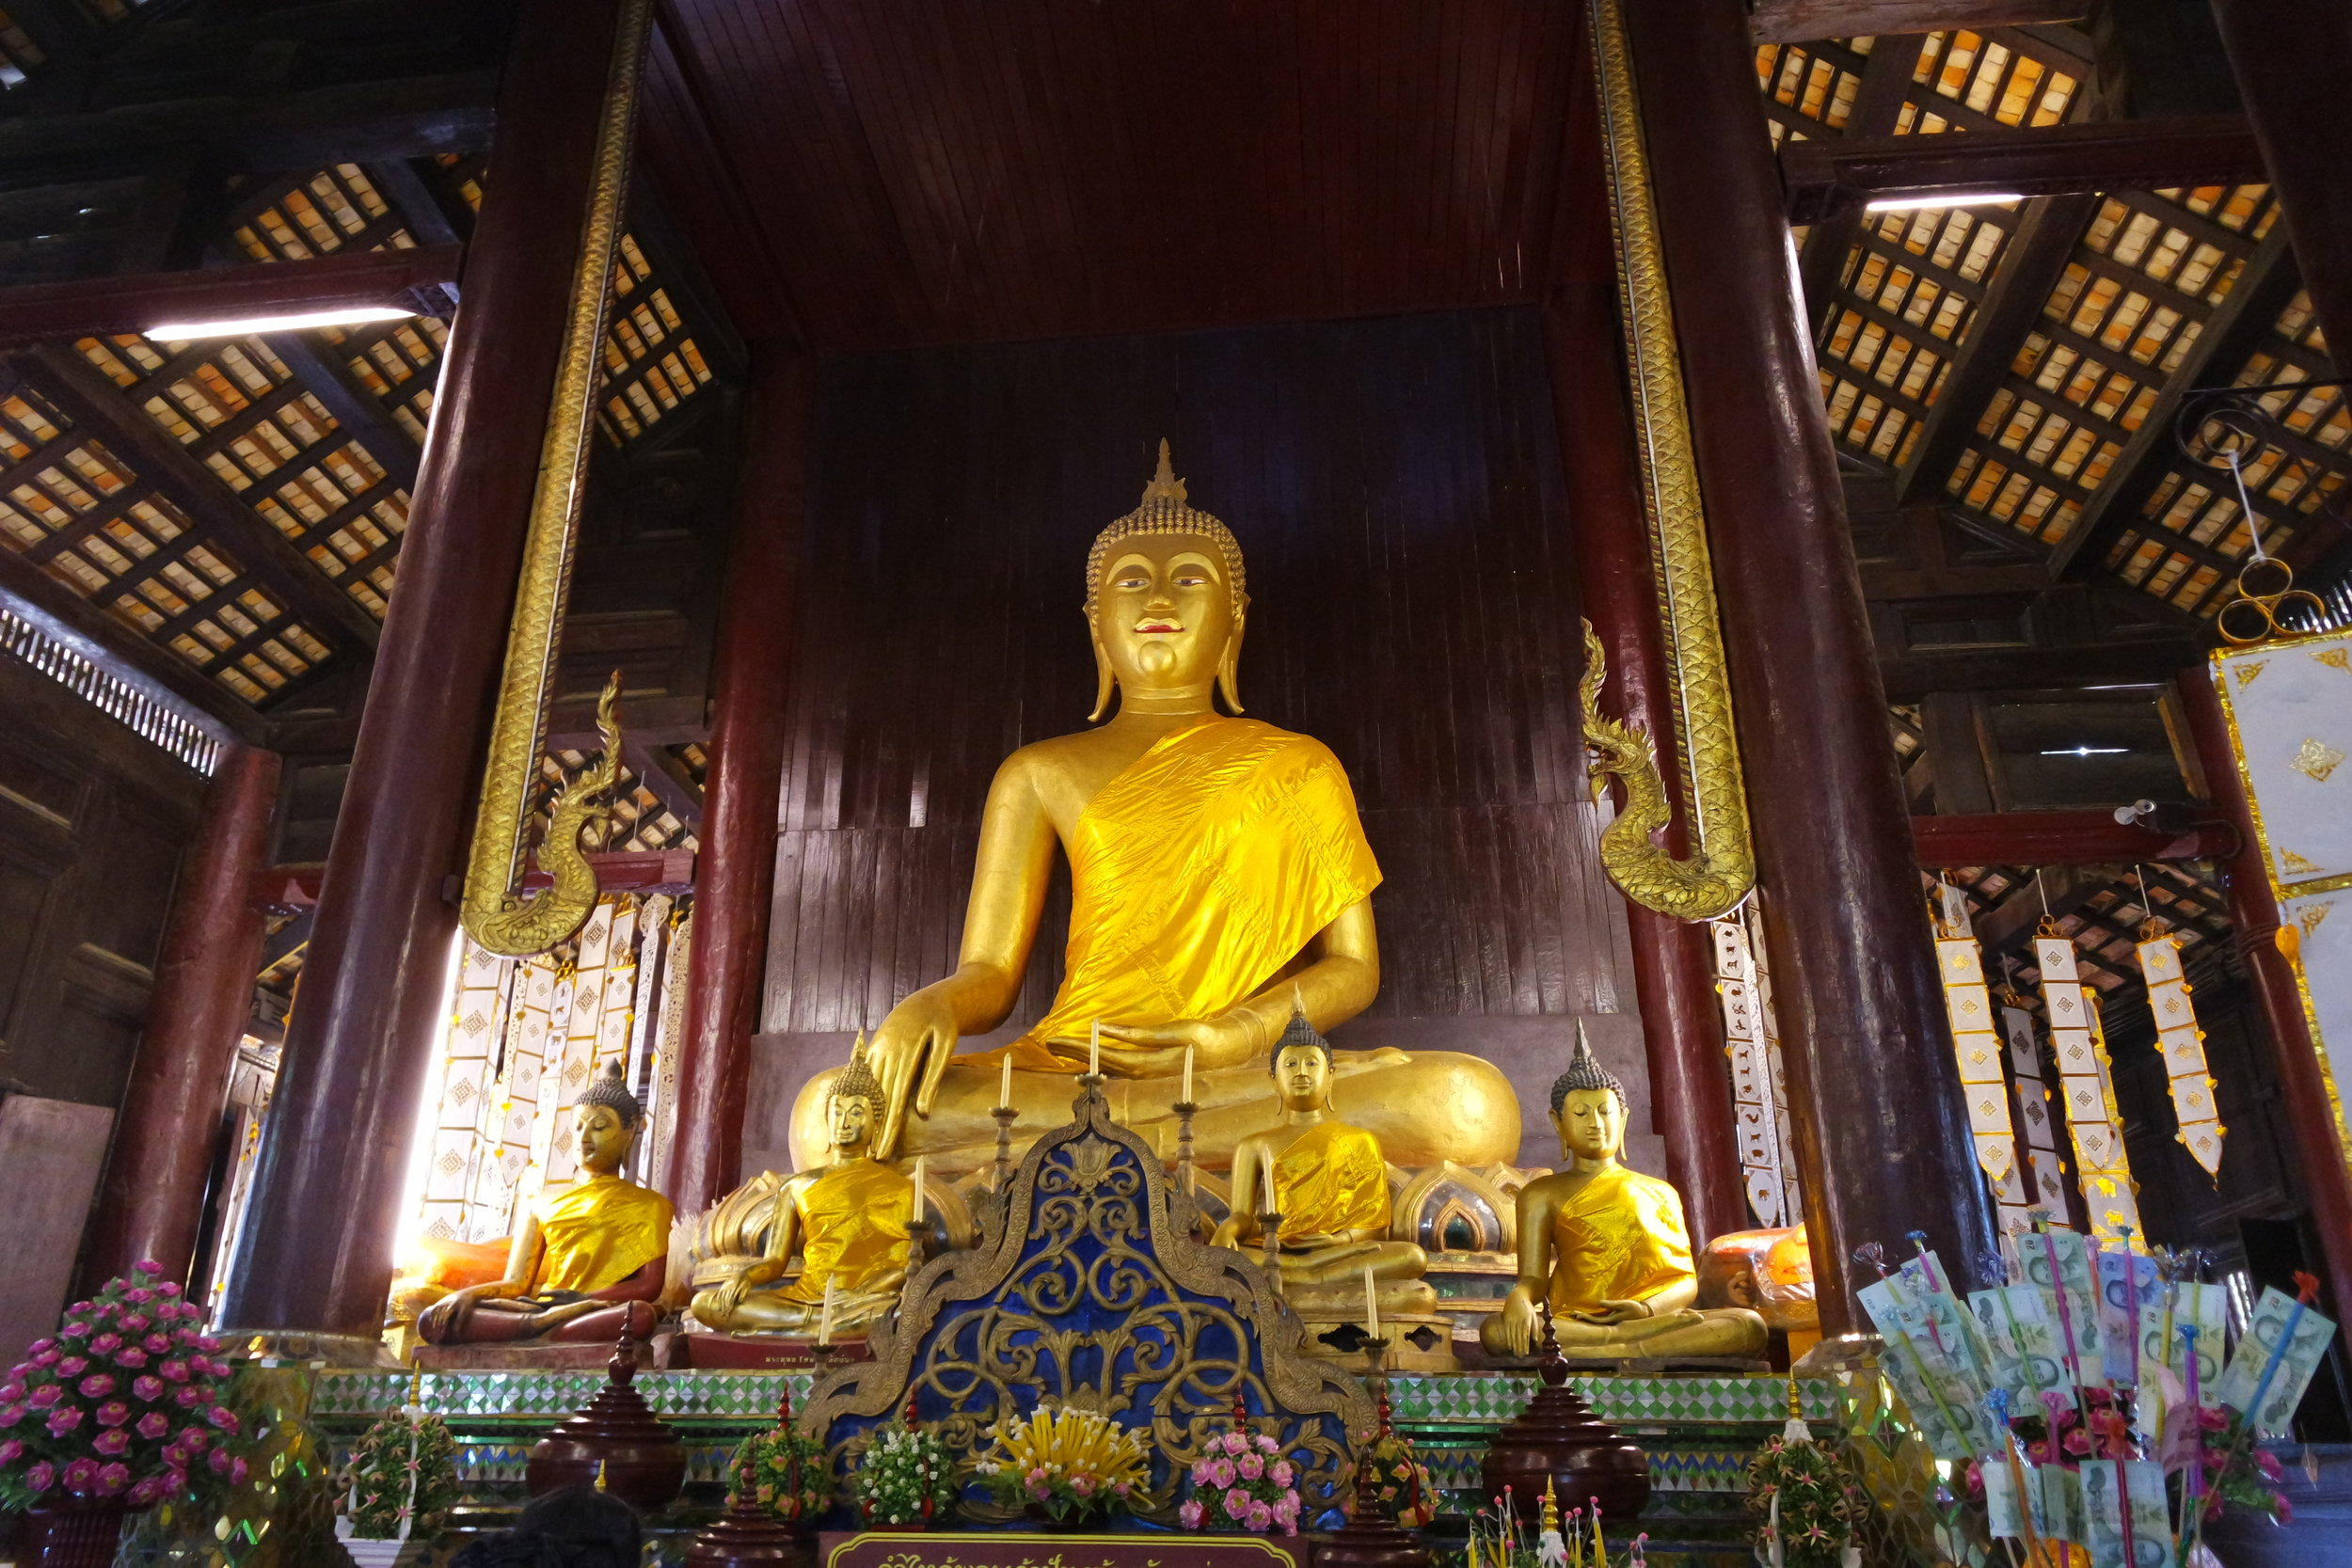 The Buddha of the Phra Singh ubosot